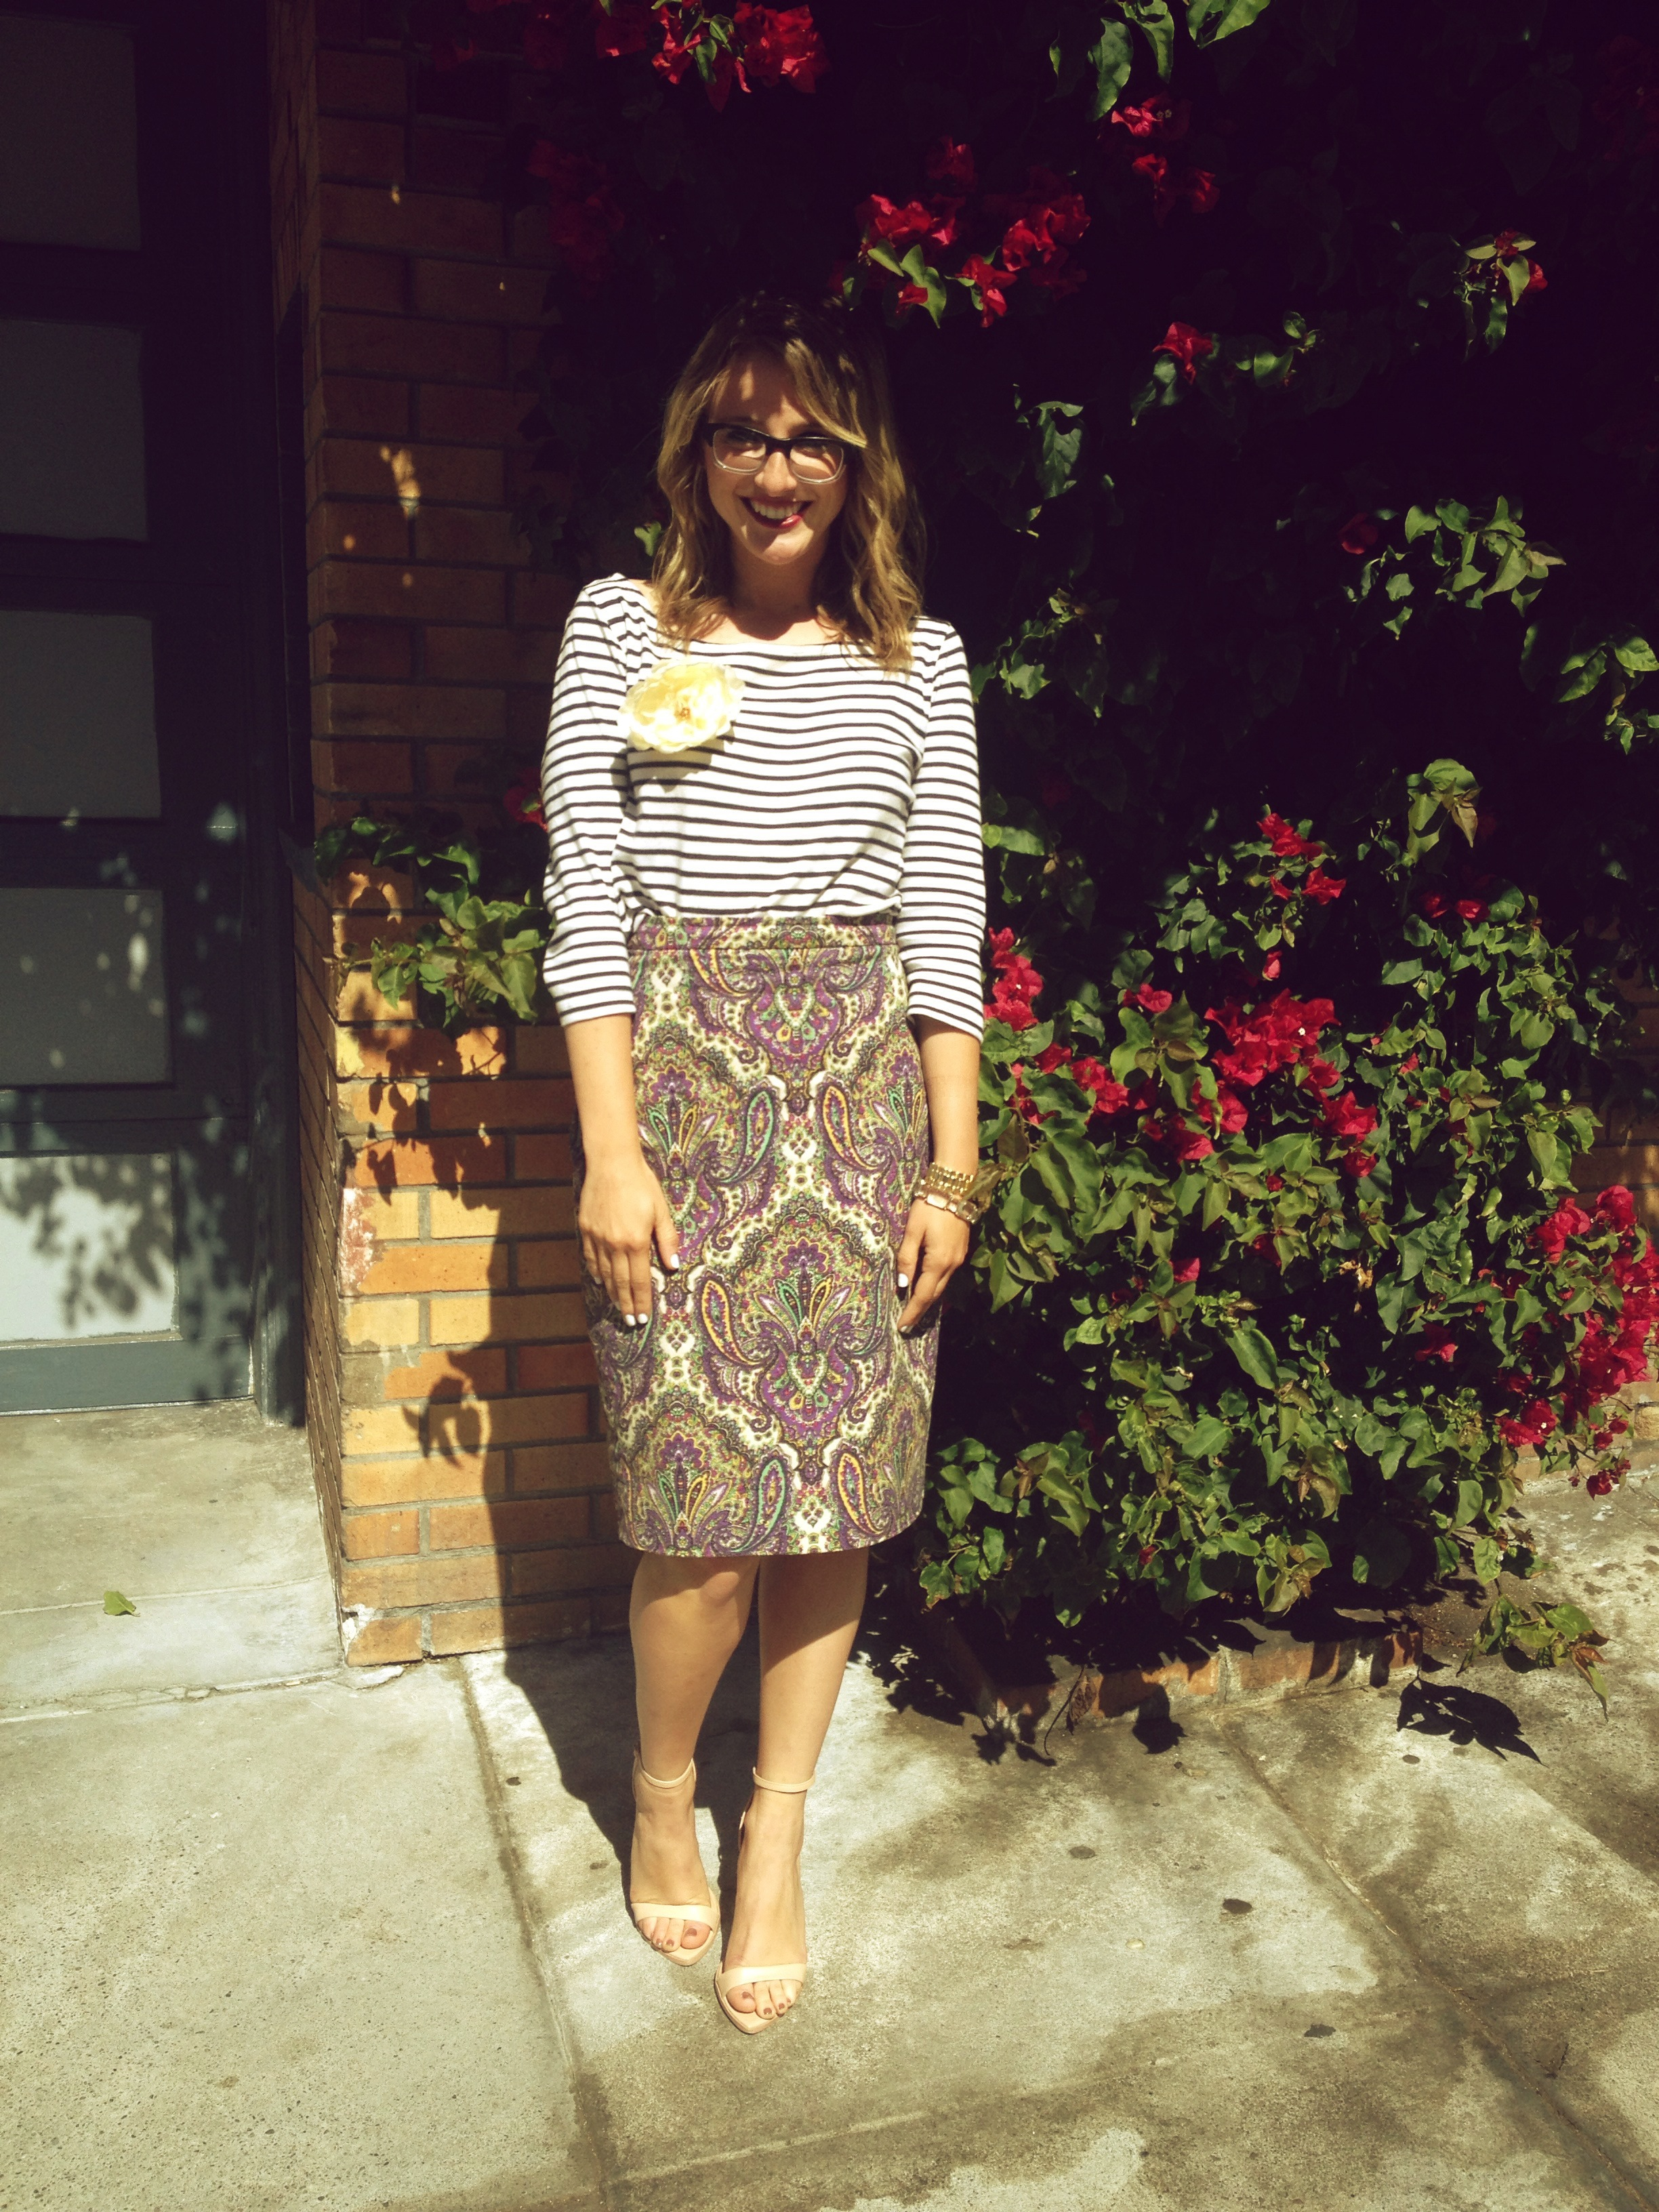 Shirt: H&M | Skirt: J.Crew | Shoes: Zara via Andi | Flower: H&M via Andi